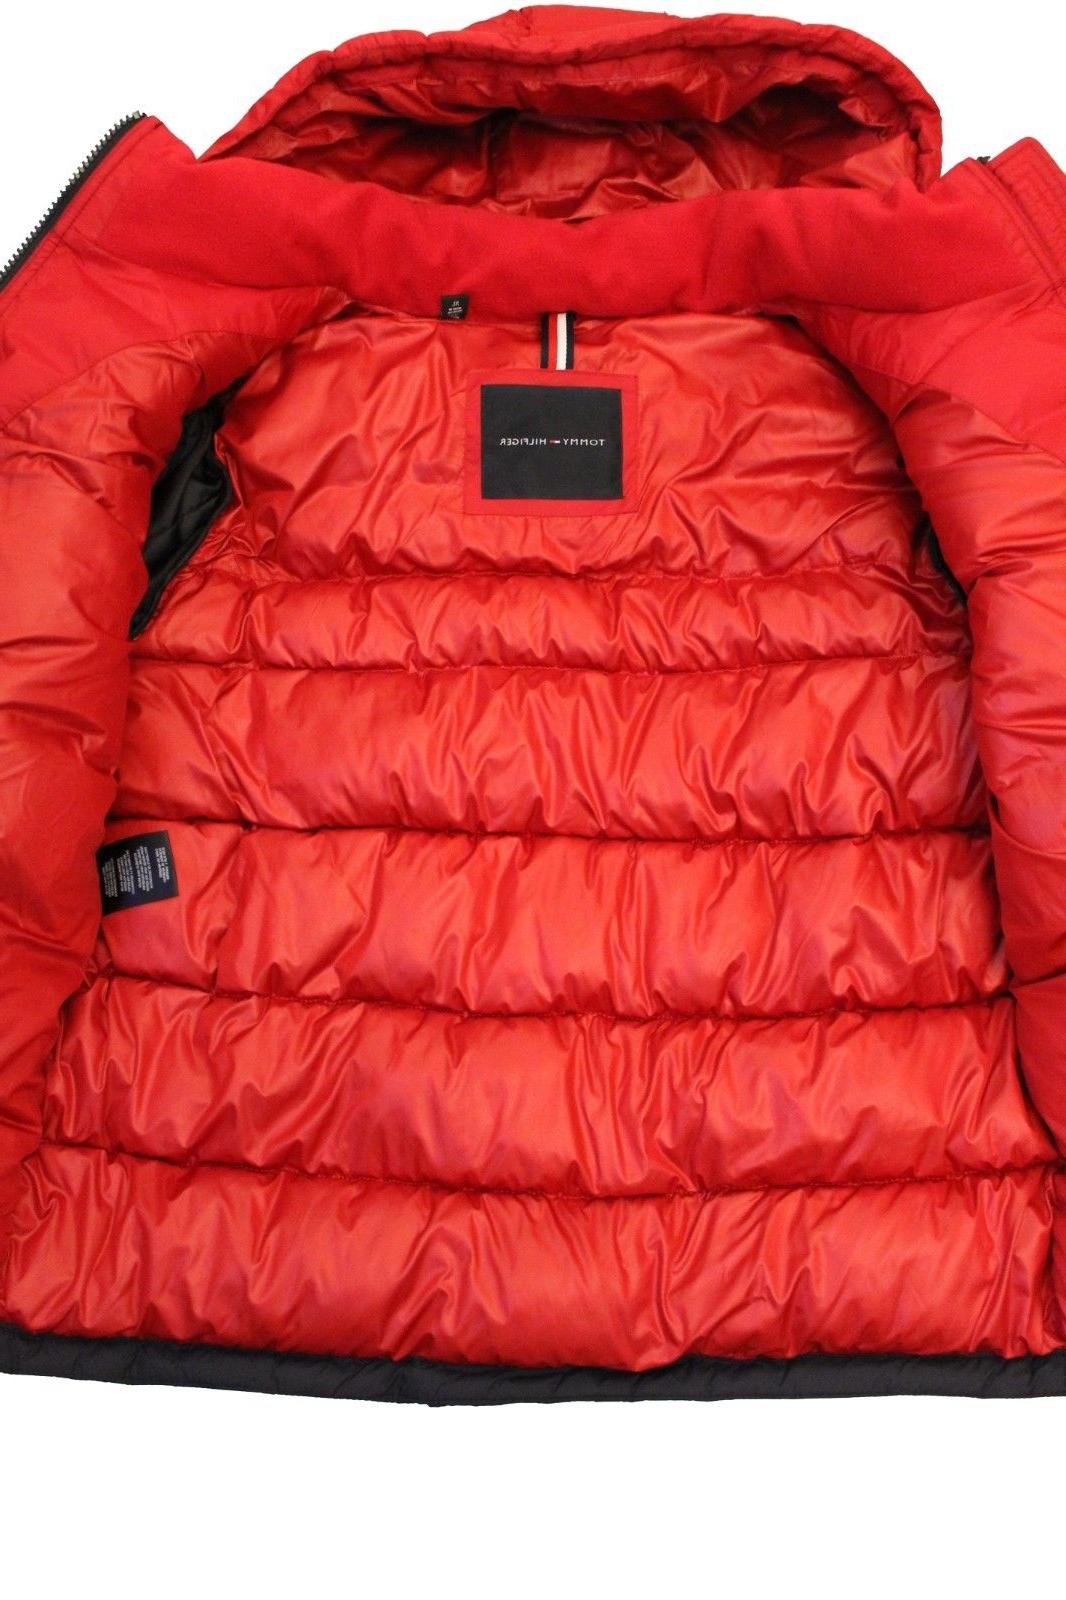 New Tommy Hilfiger Ultra Hooded Puffer Jacket